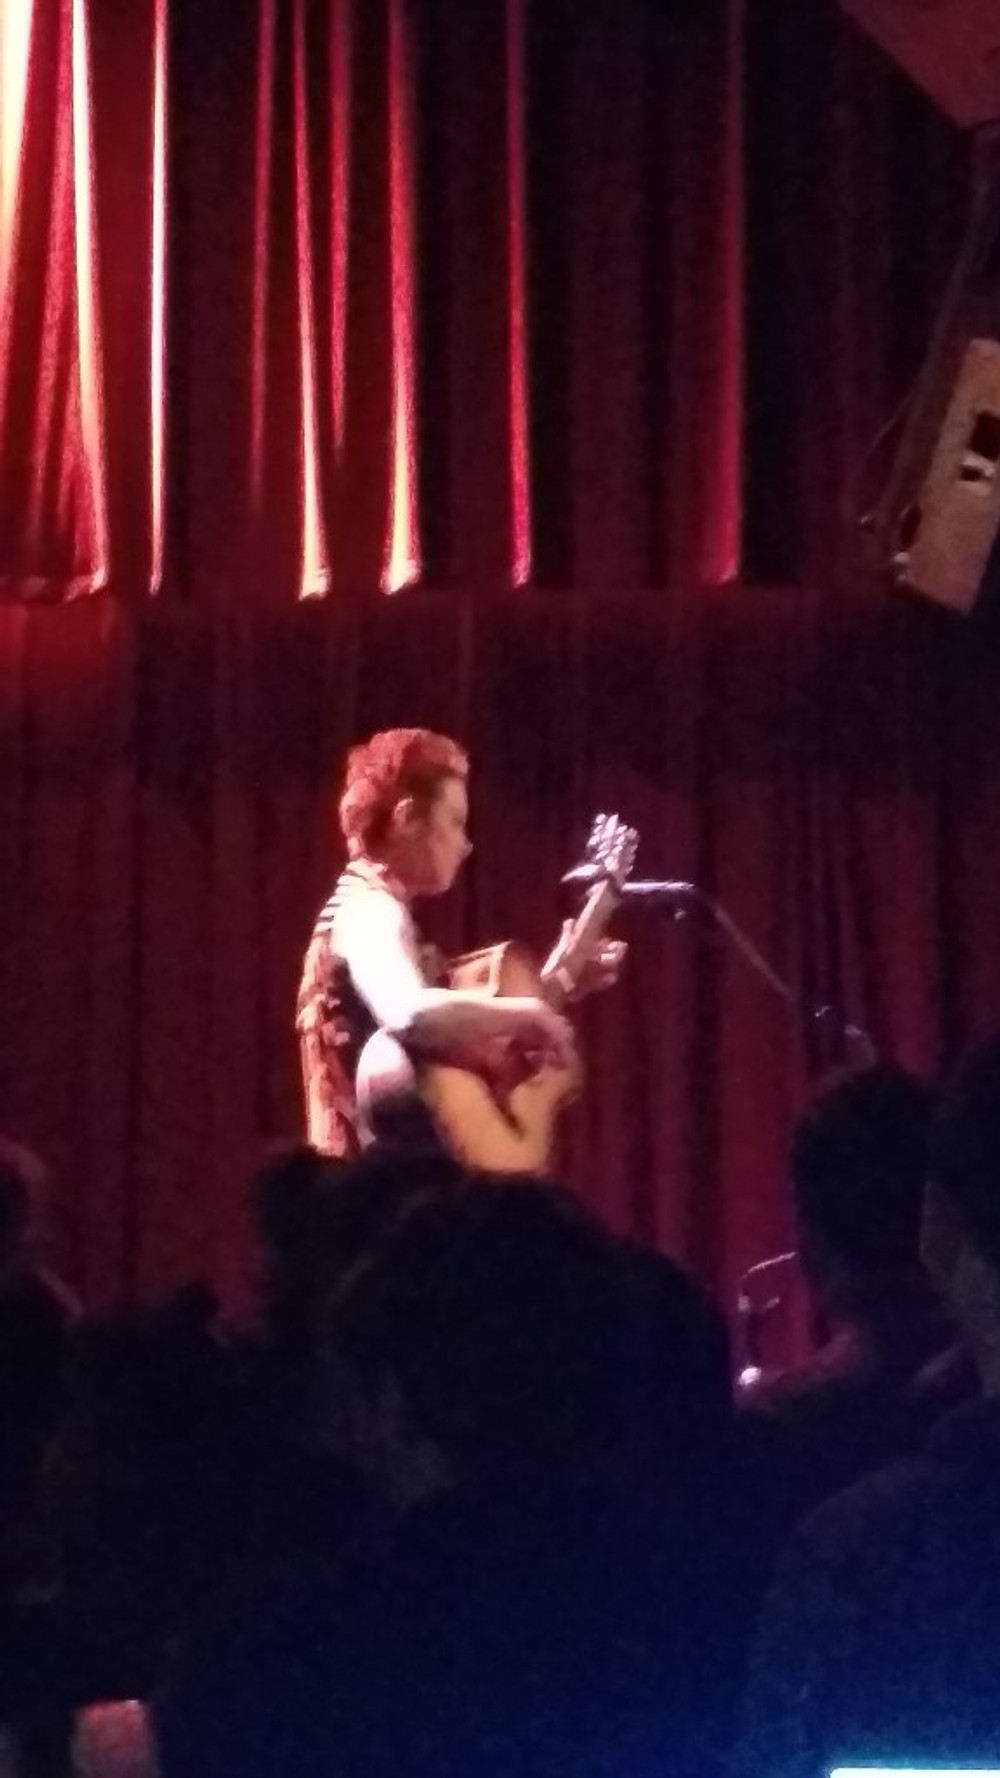 A picture of Christie Lenee on stage with her guitar.